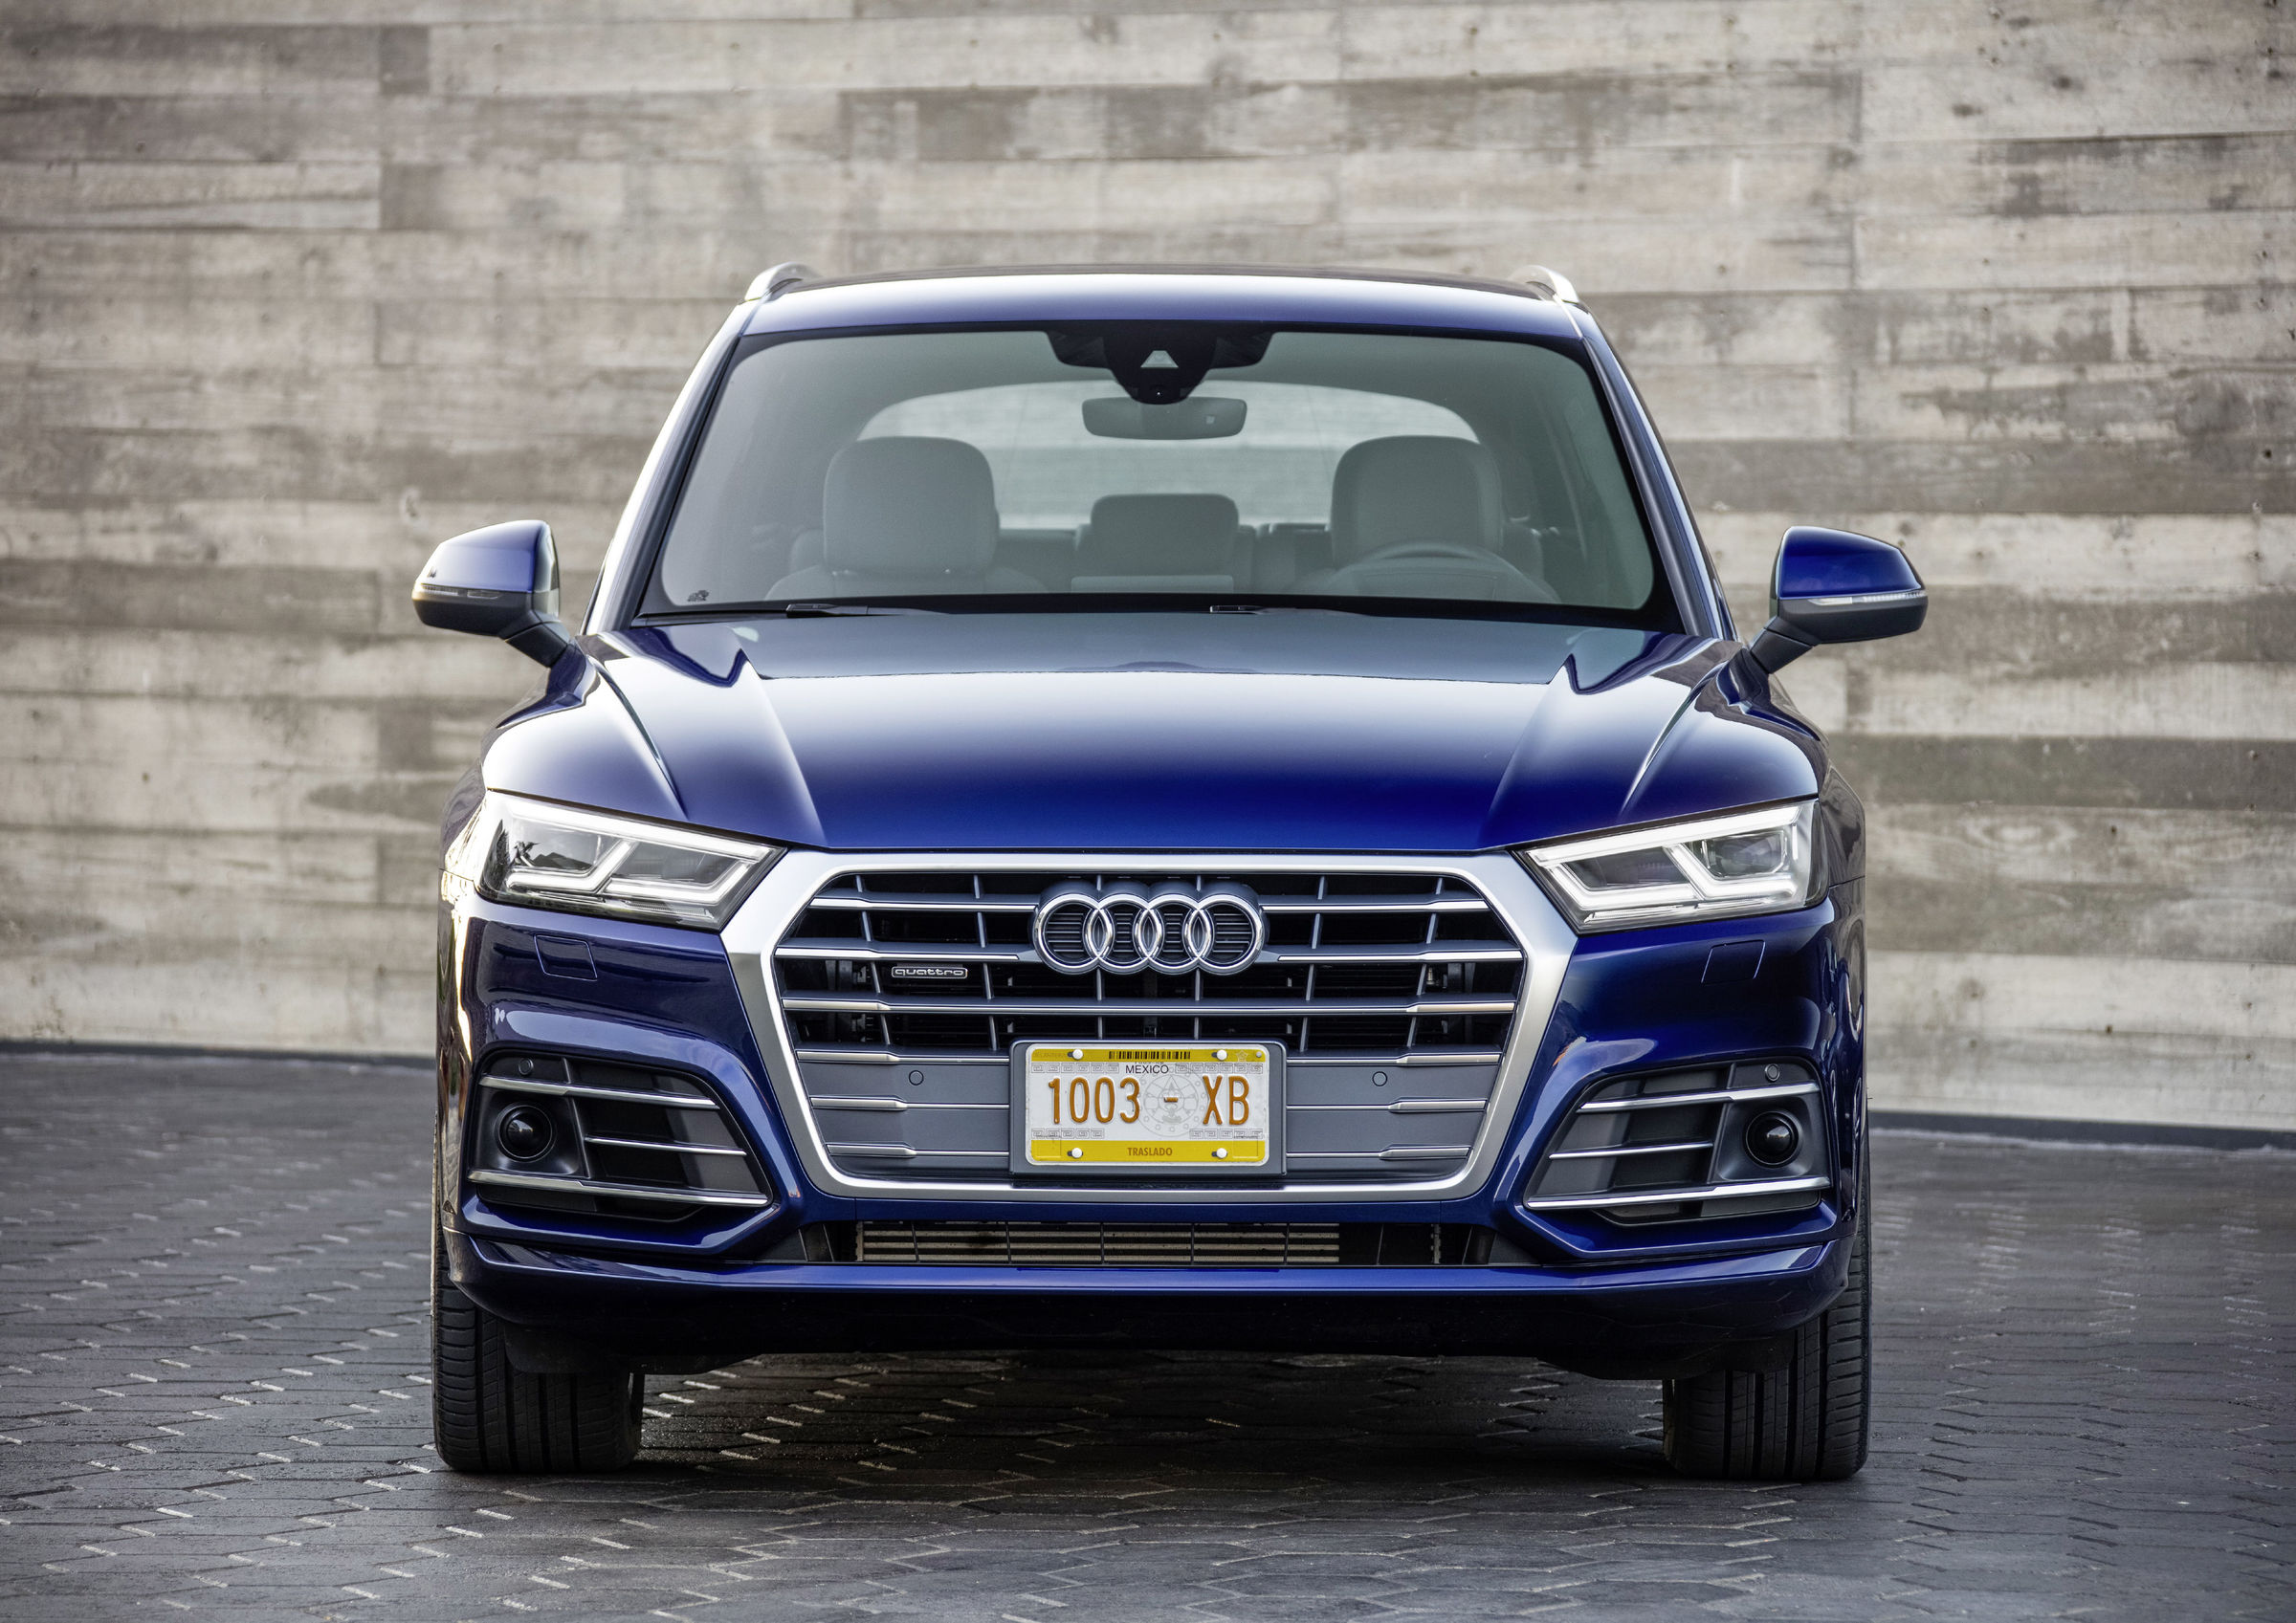 December 2018 Q5 lease special!